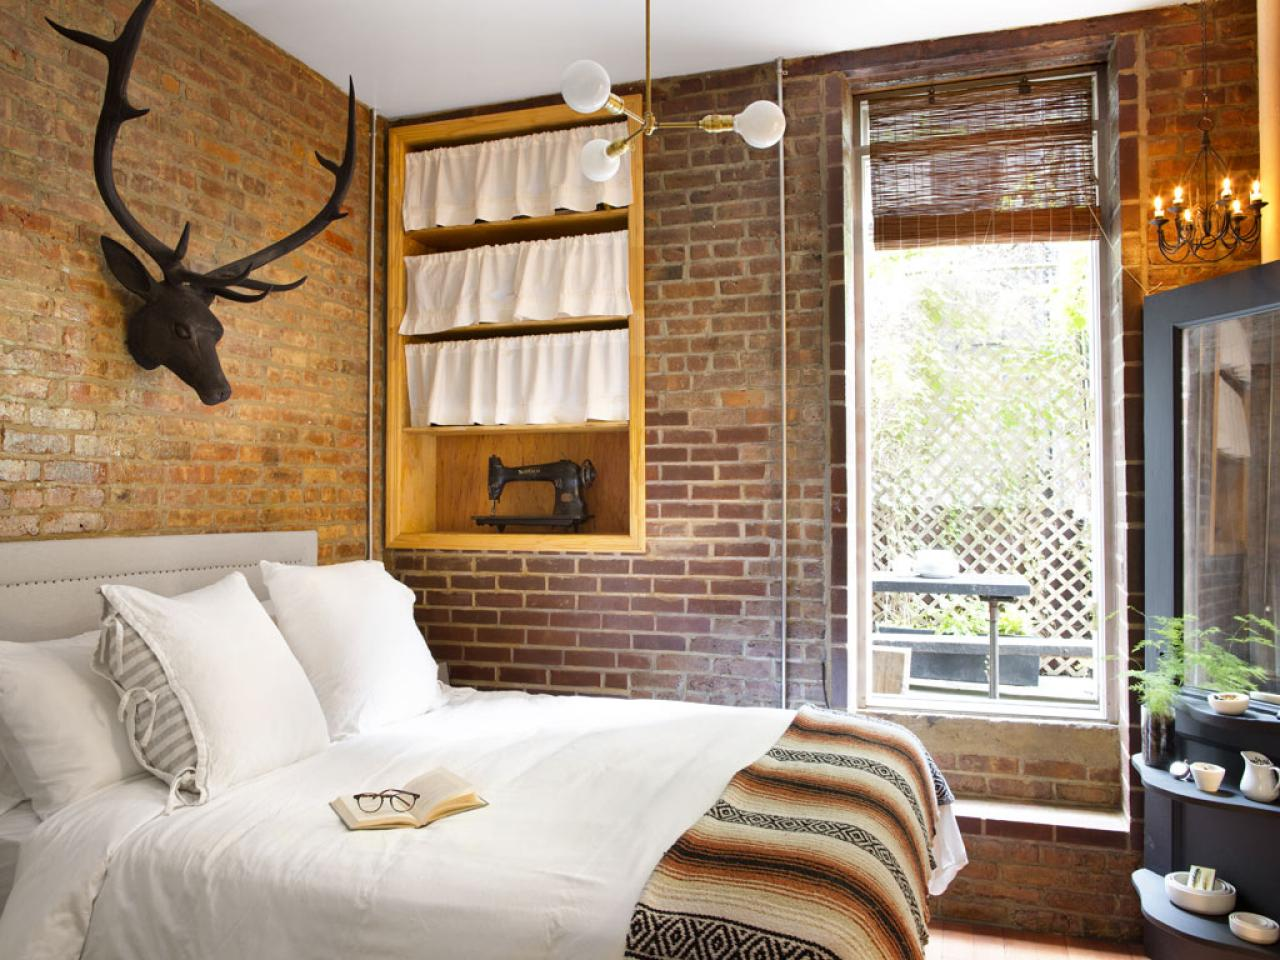 Peek Inside A Design Star Contestant S Rustic Nyc Apartment Hgtv